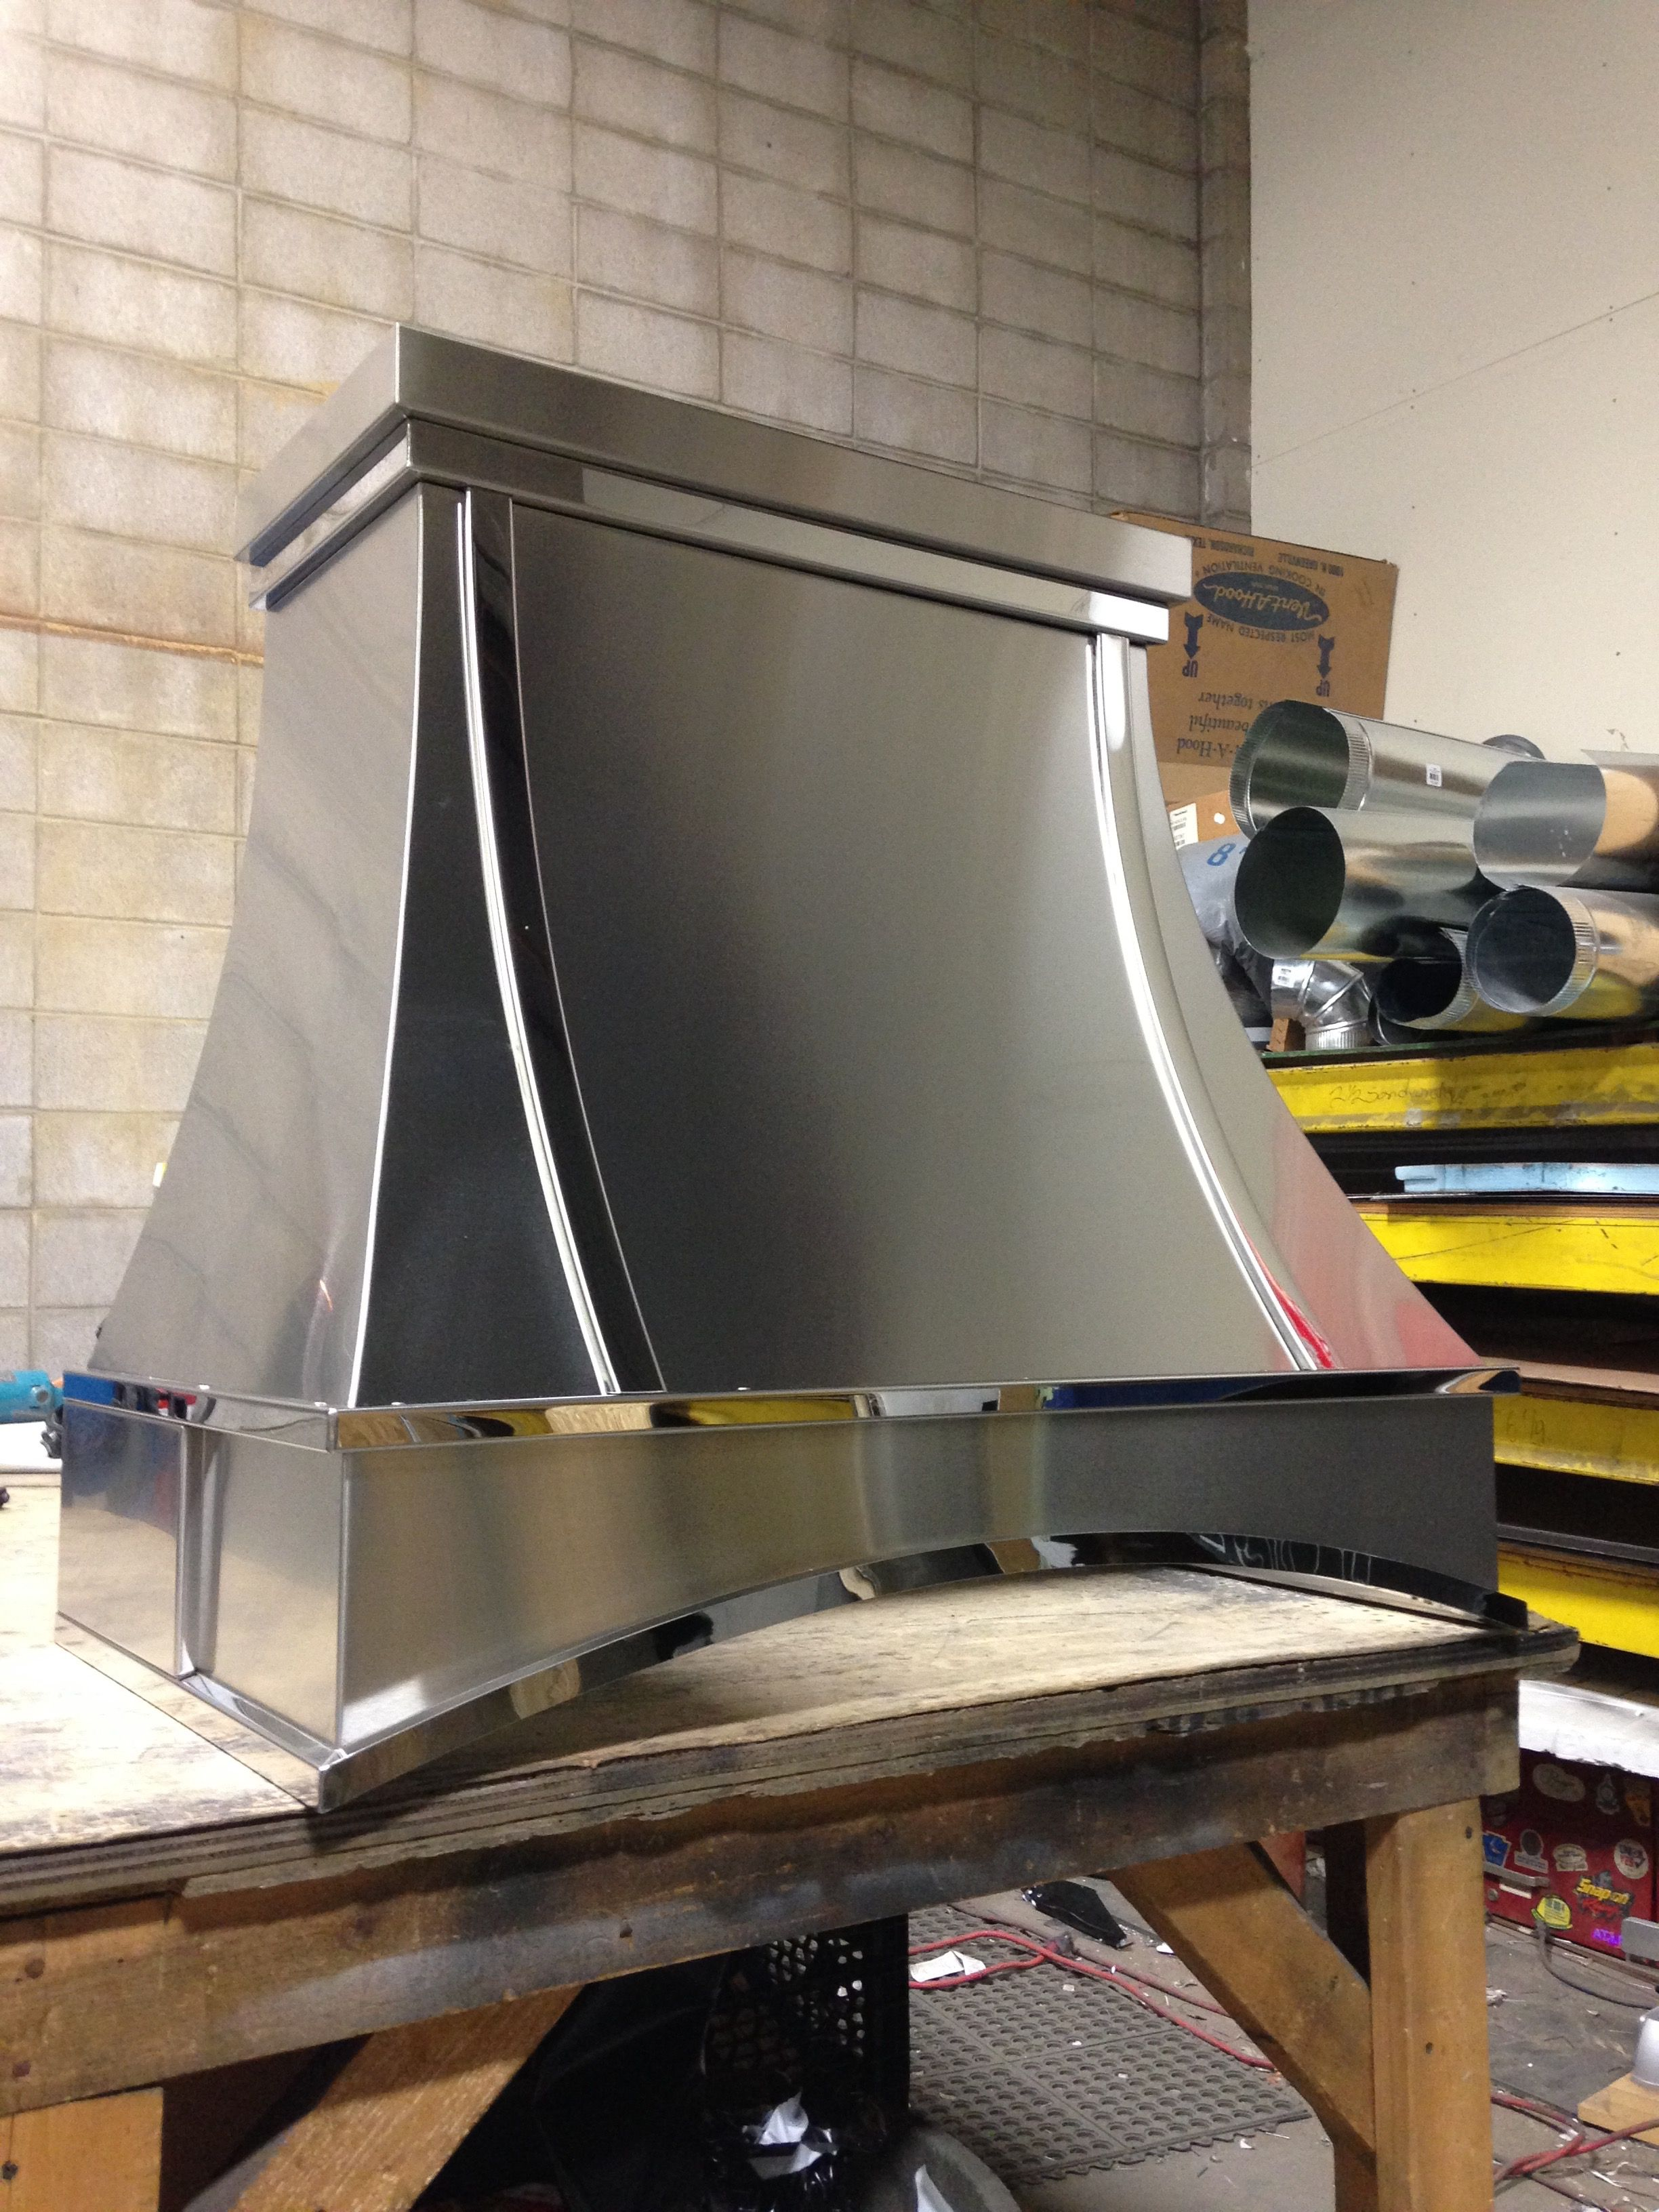 Hoods By Hammersmith Stainless Steel Range Hoods Kitchen Vent